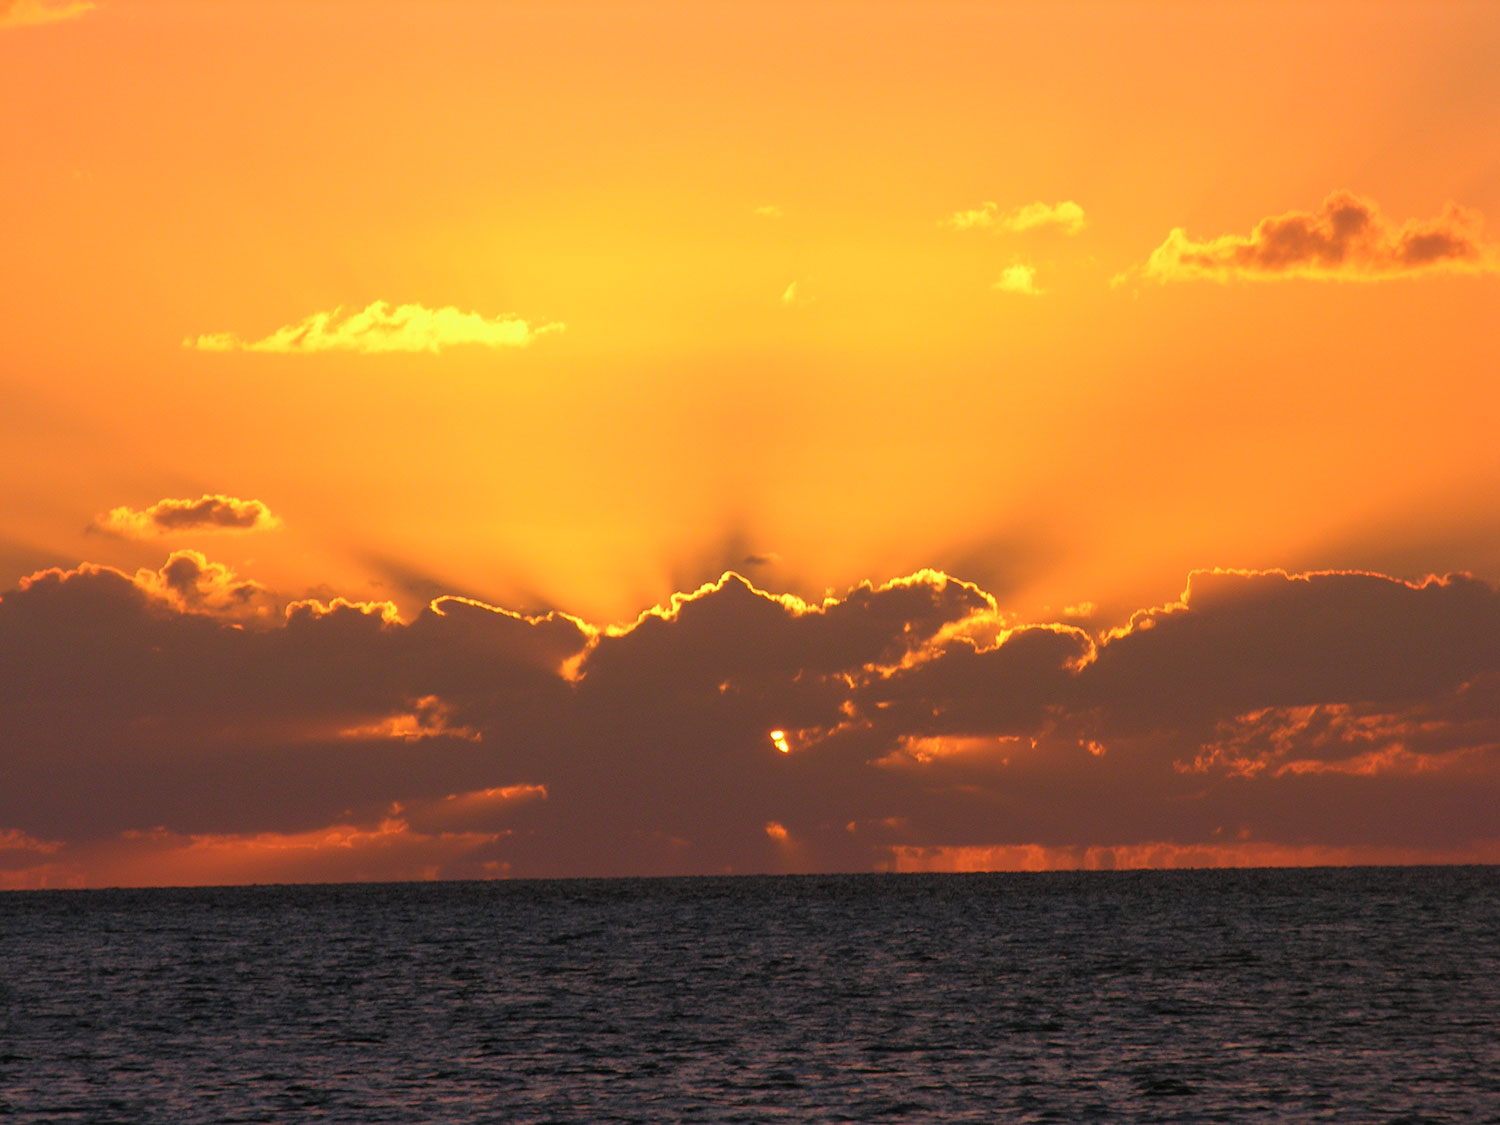 wendy mitman clarke still water bending cruising world sunset offshore